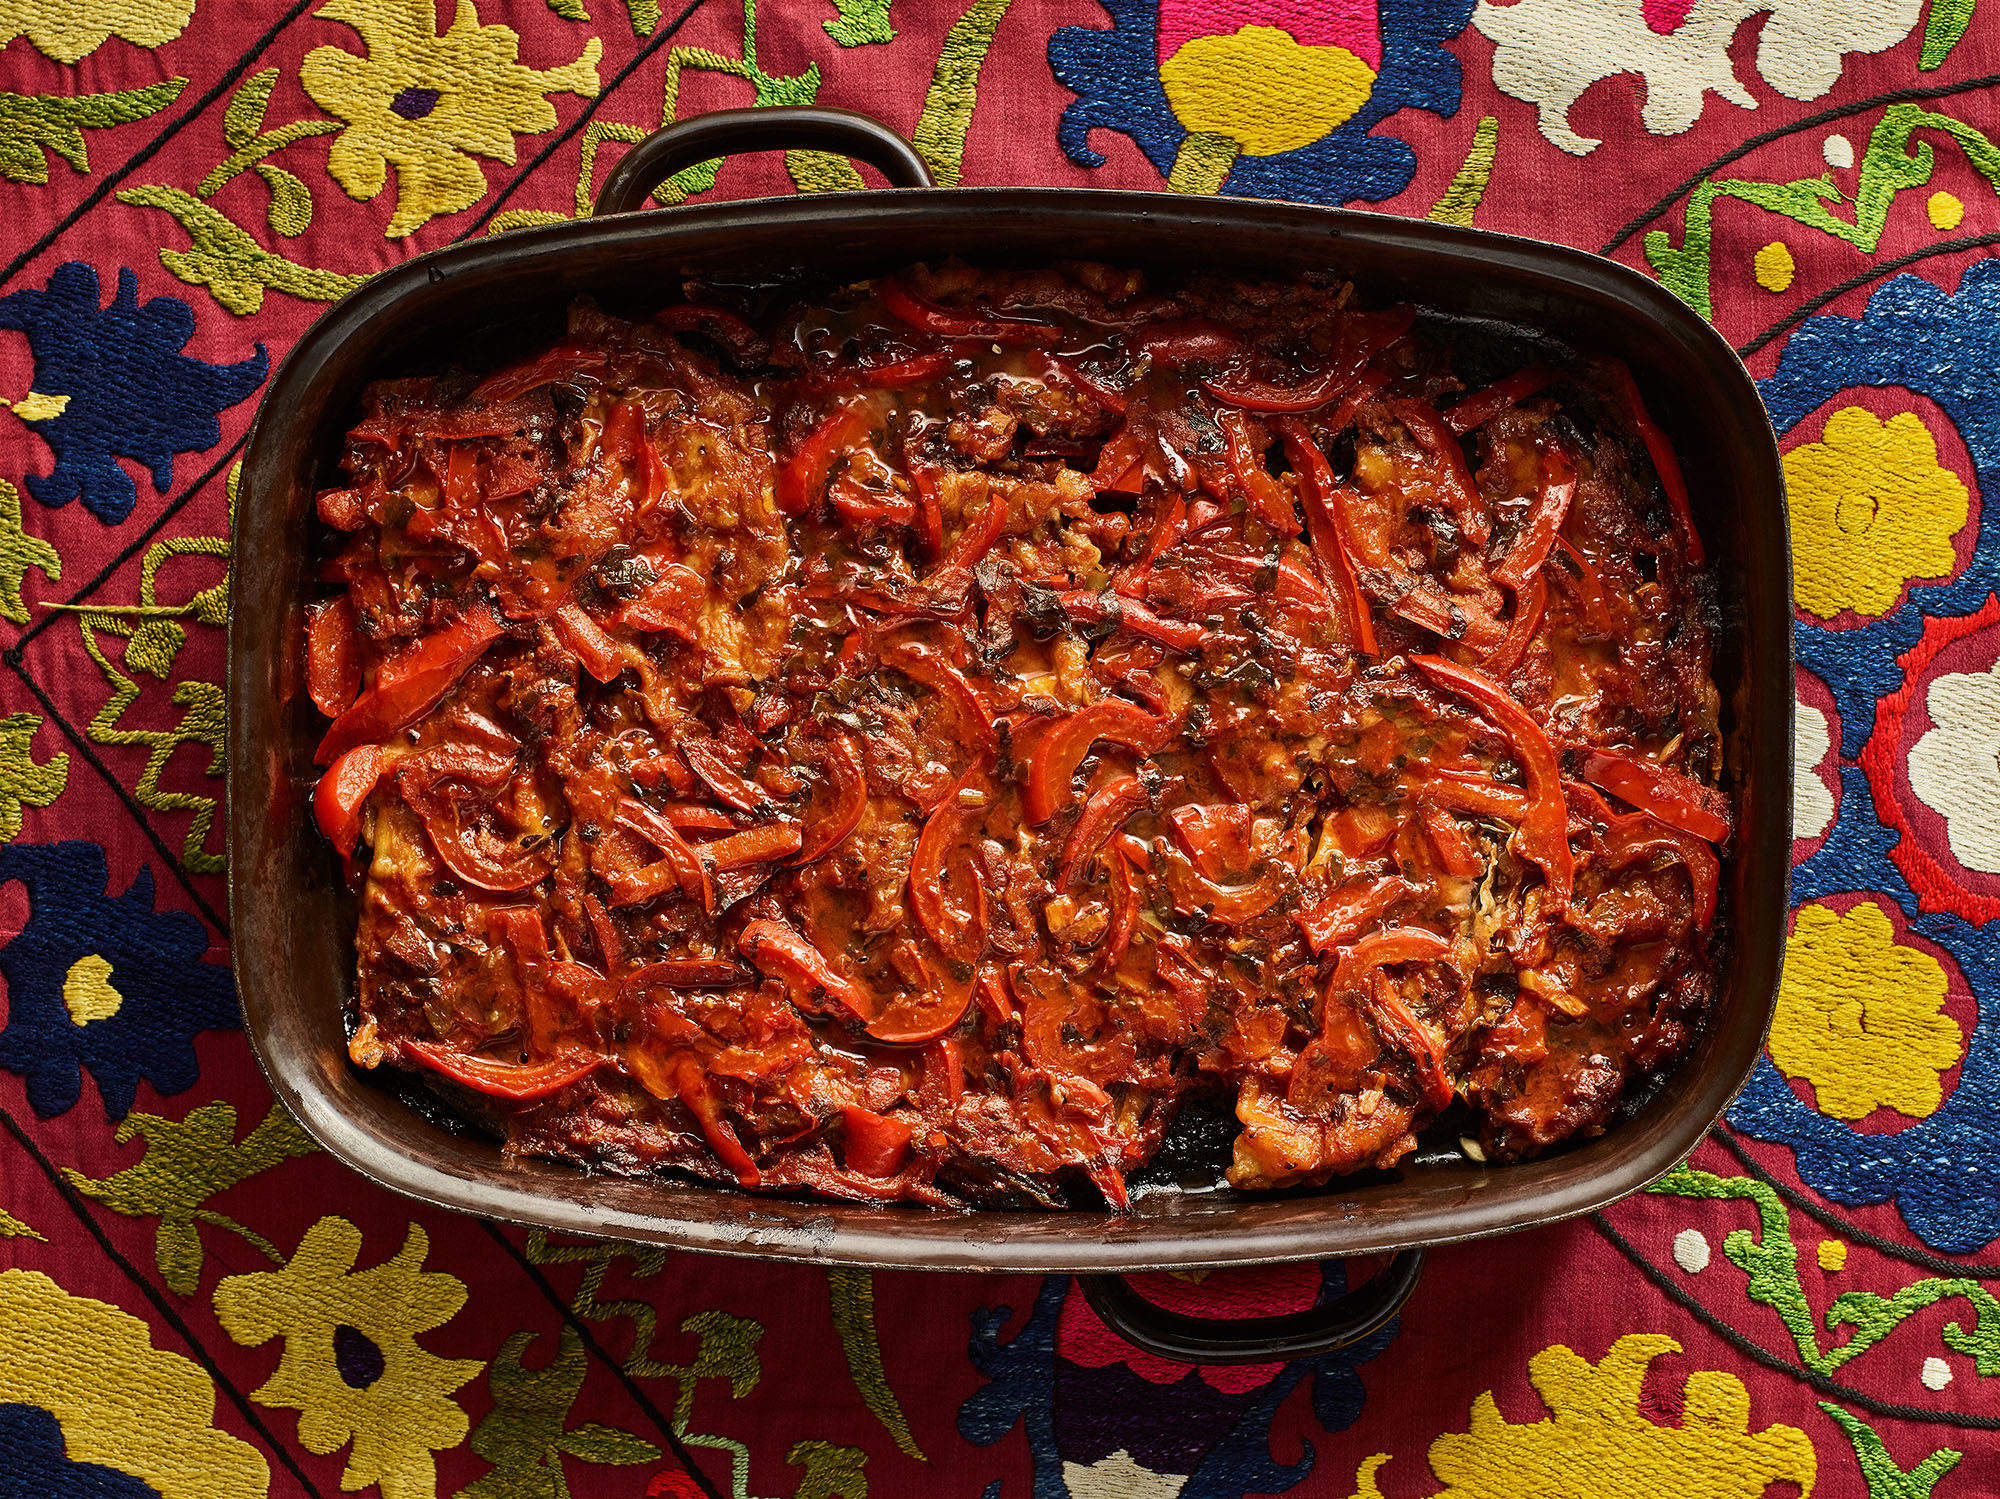 Eggplants with tomatoes and peppers in a rectangular baking dish atop a colorful tablecloth